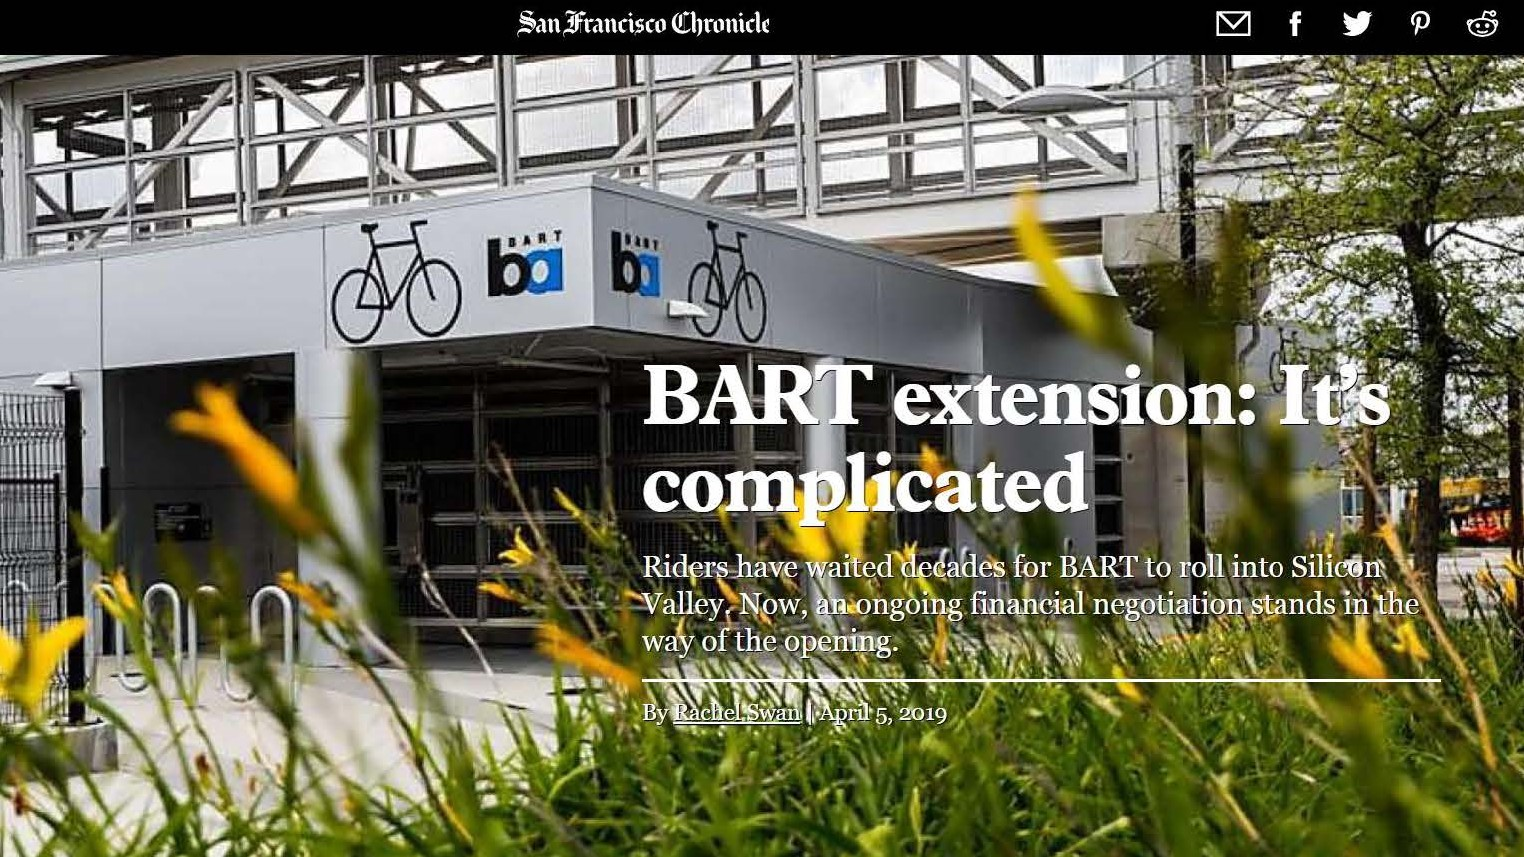 SF Chronicle cover photo of BART station